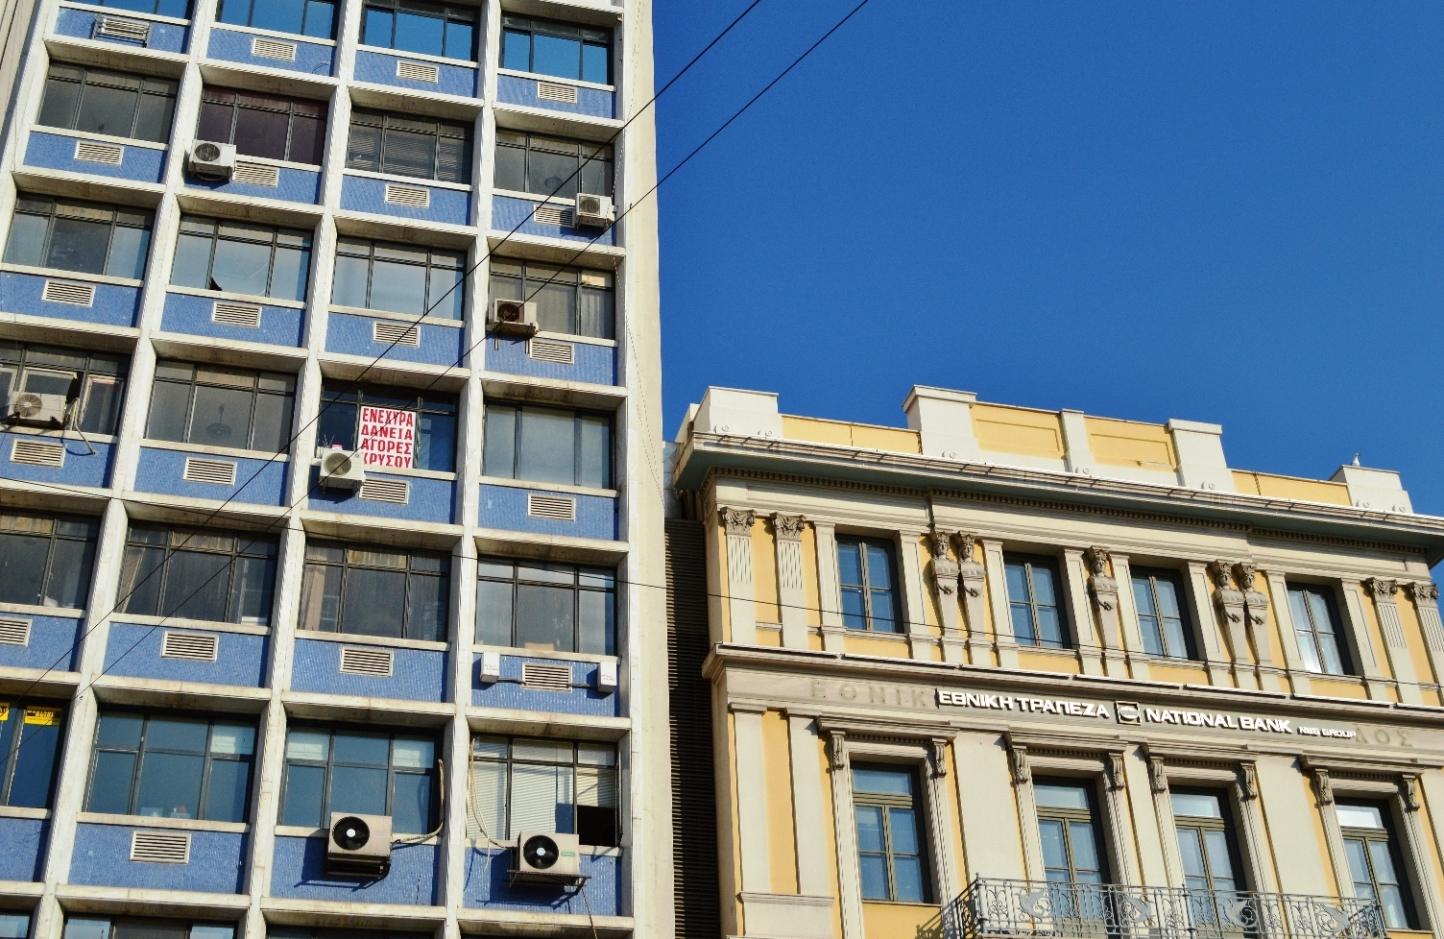 Buildings on Omonoia Square, Athens, Greece